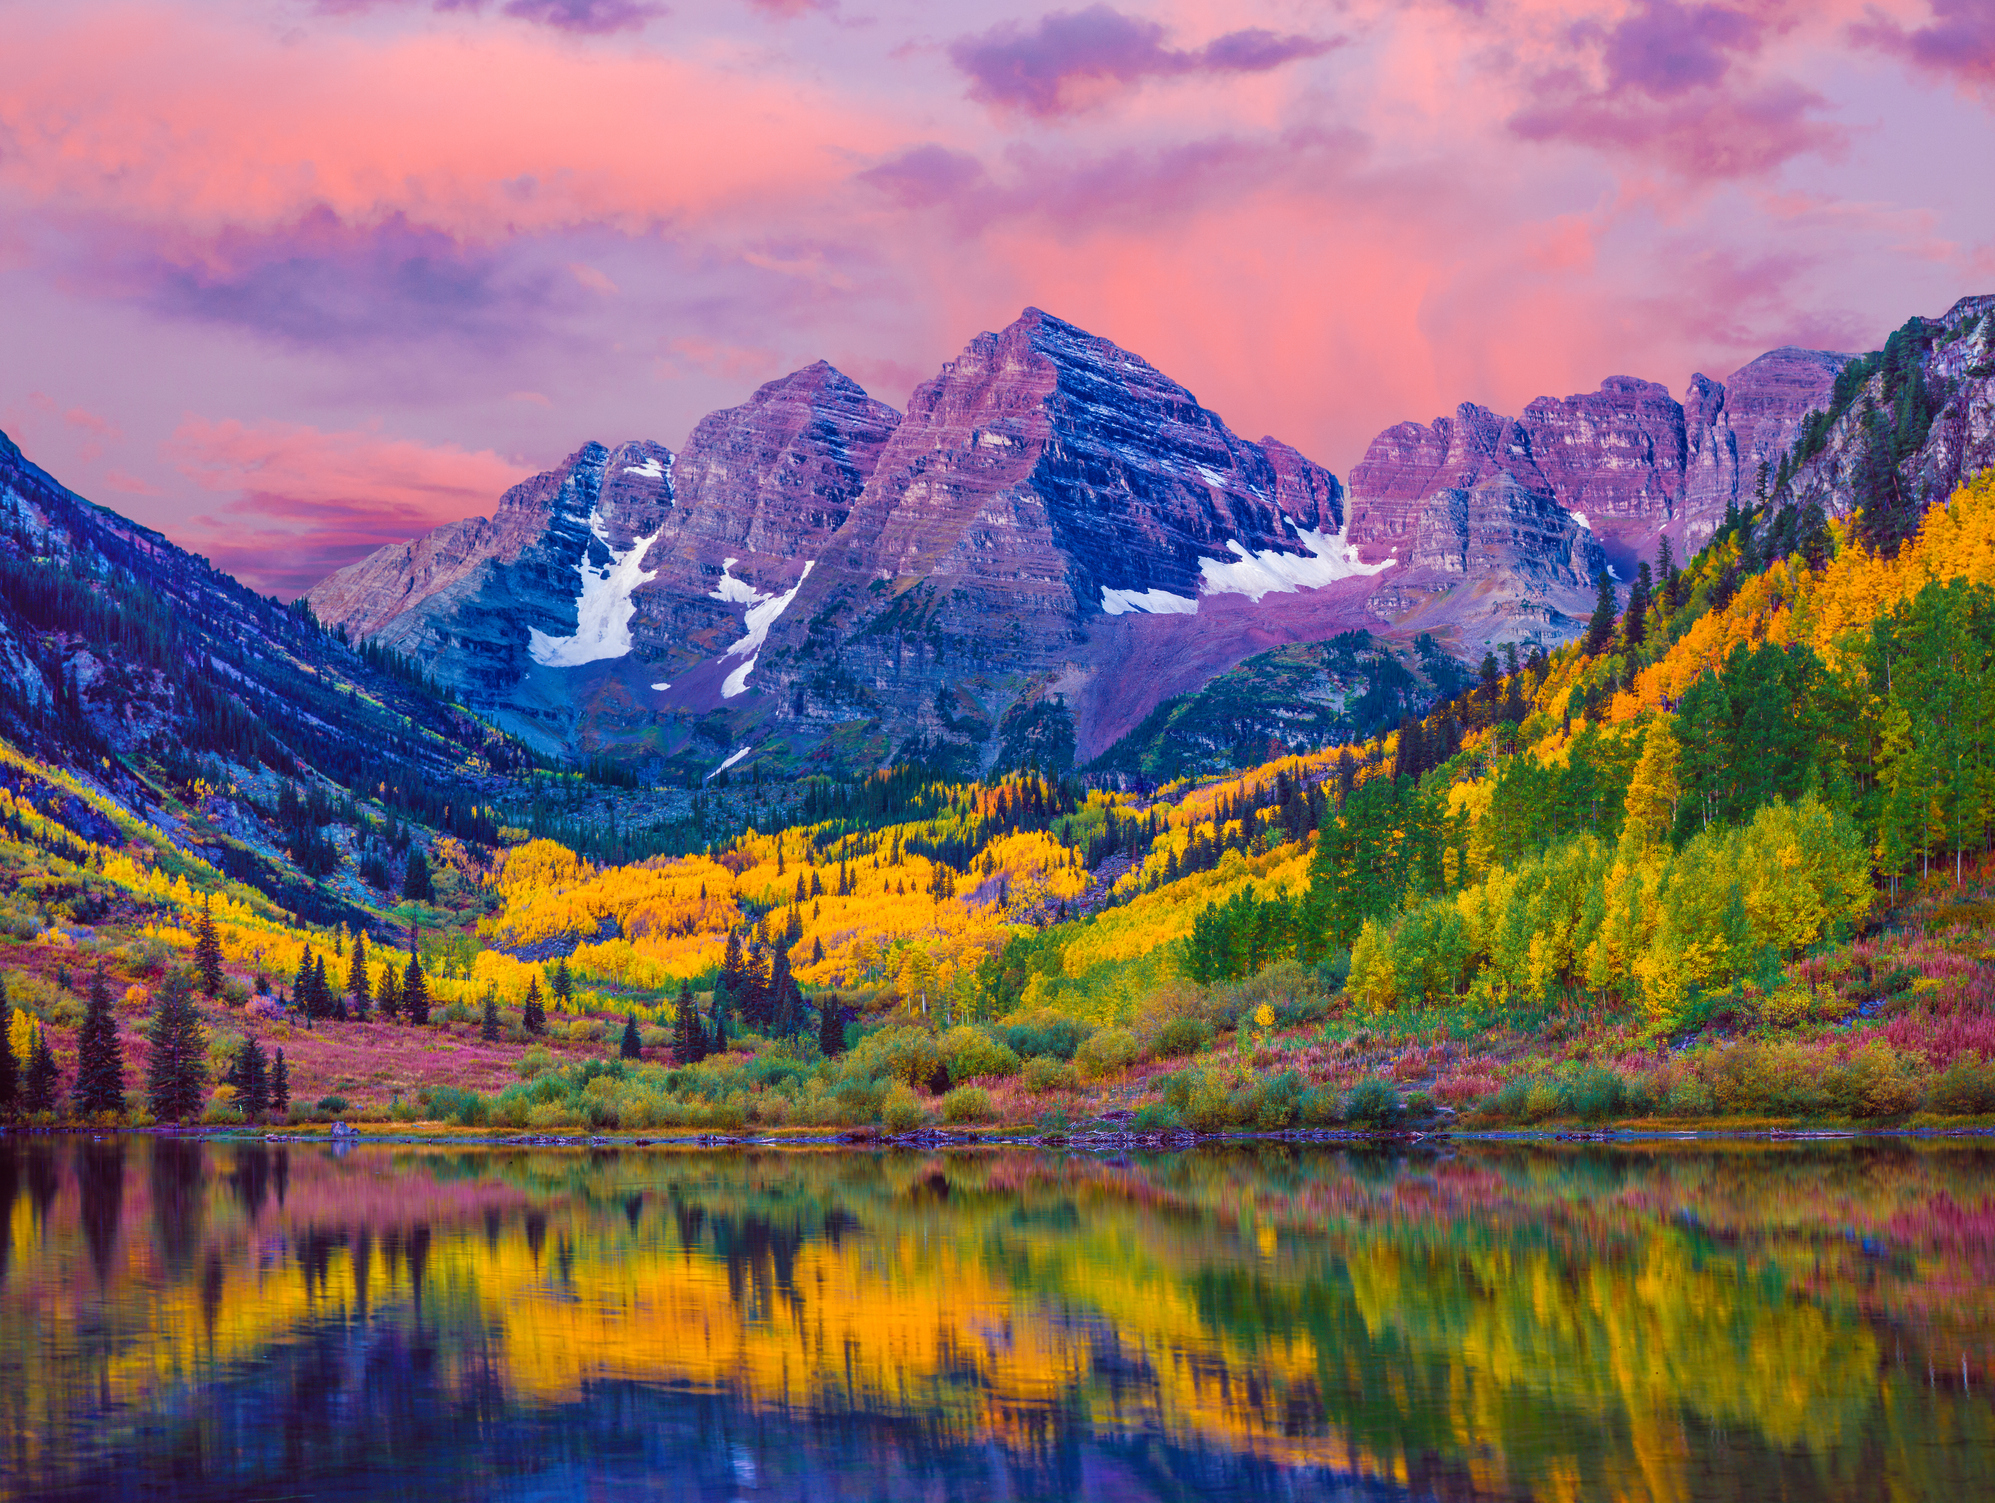 Dawn at Maroon Bells with autumn aspen trees and Maroon Lake in the Rocky Mountains near Aspen, Colorado